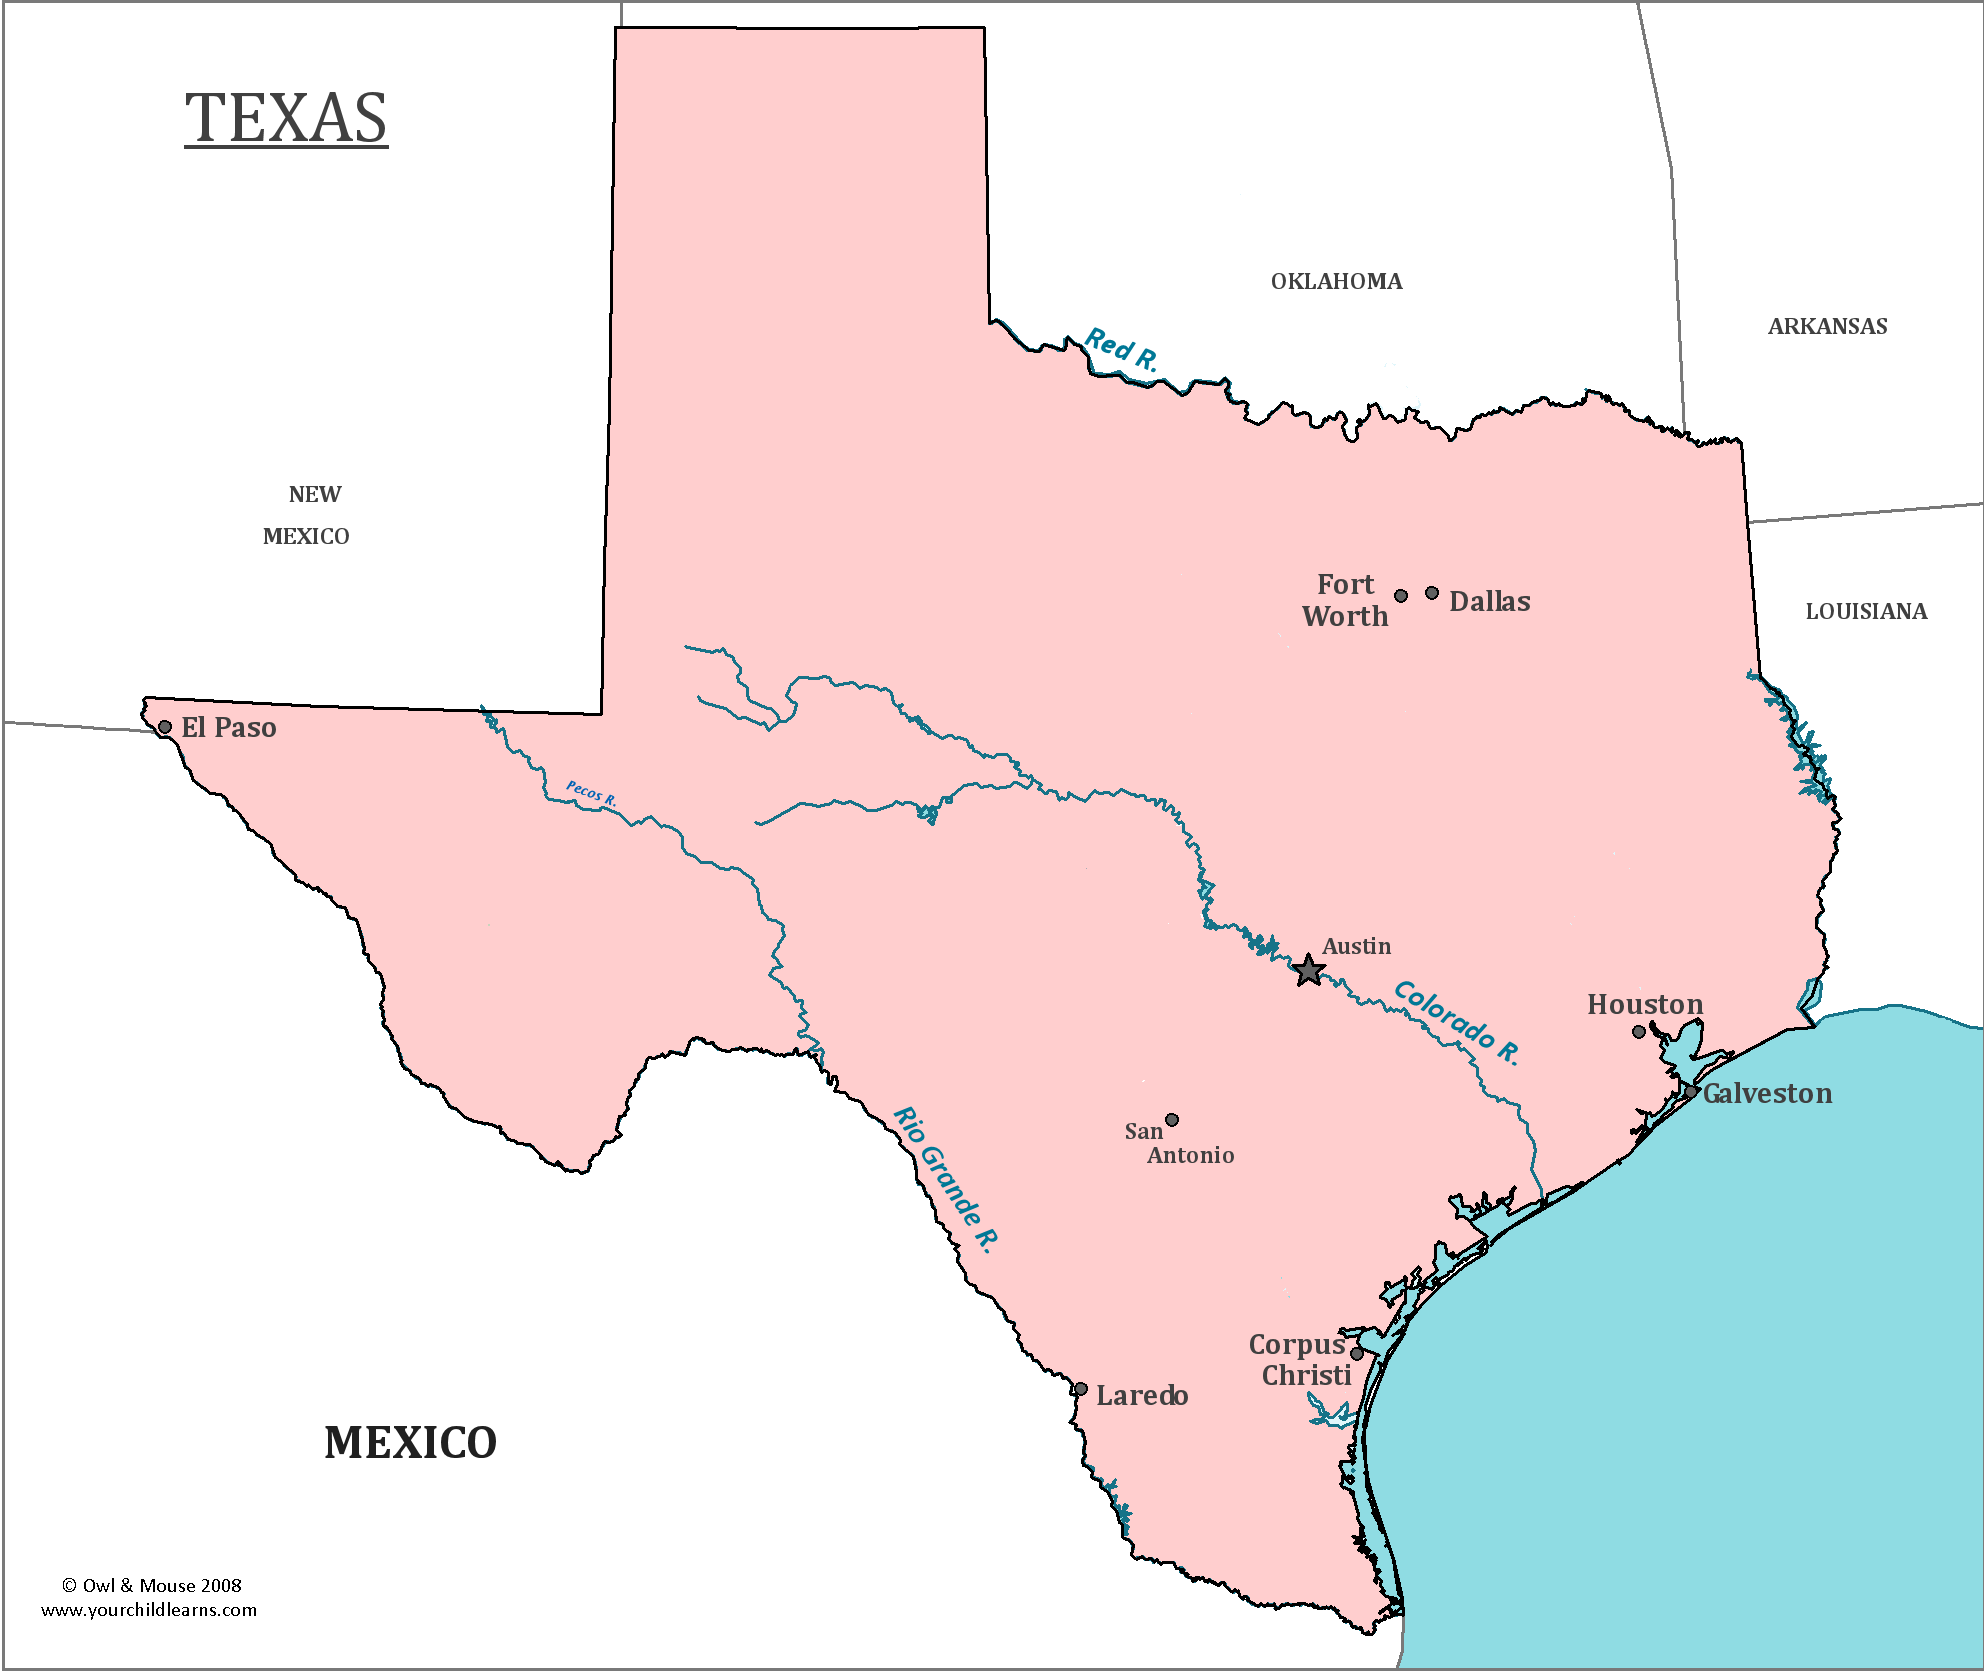 Texas State Map - Map of Texas and Information About the State